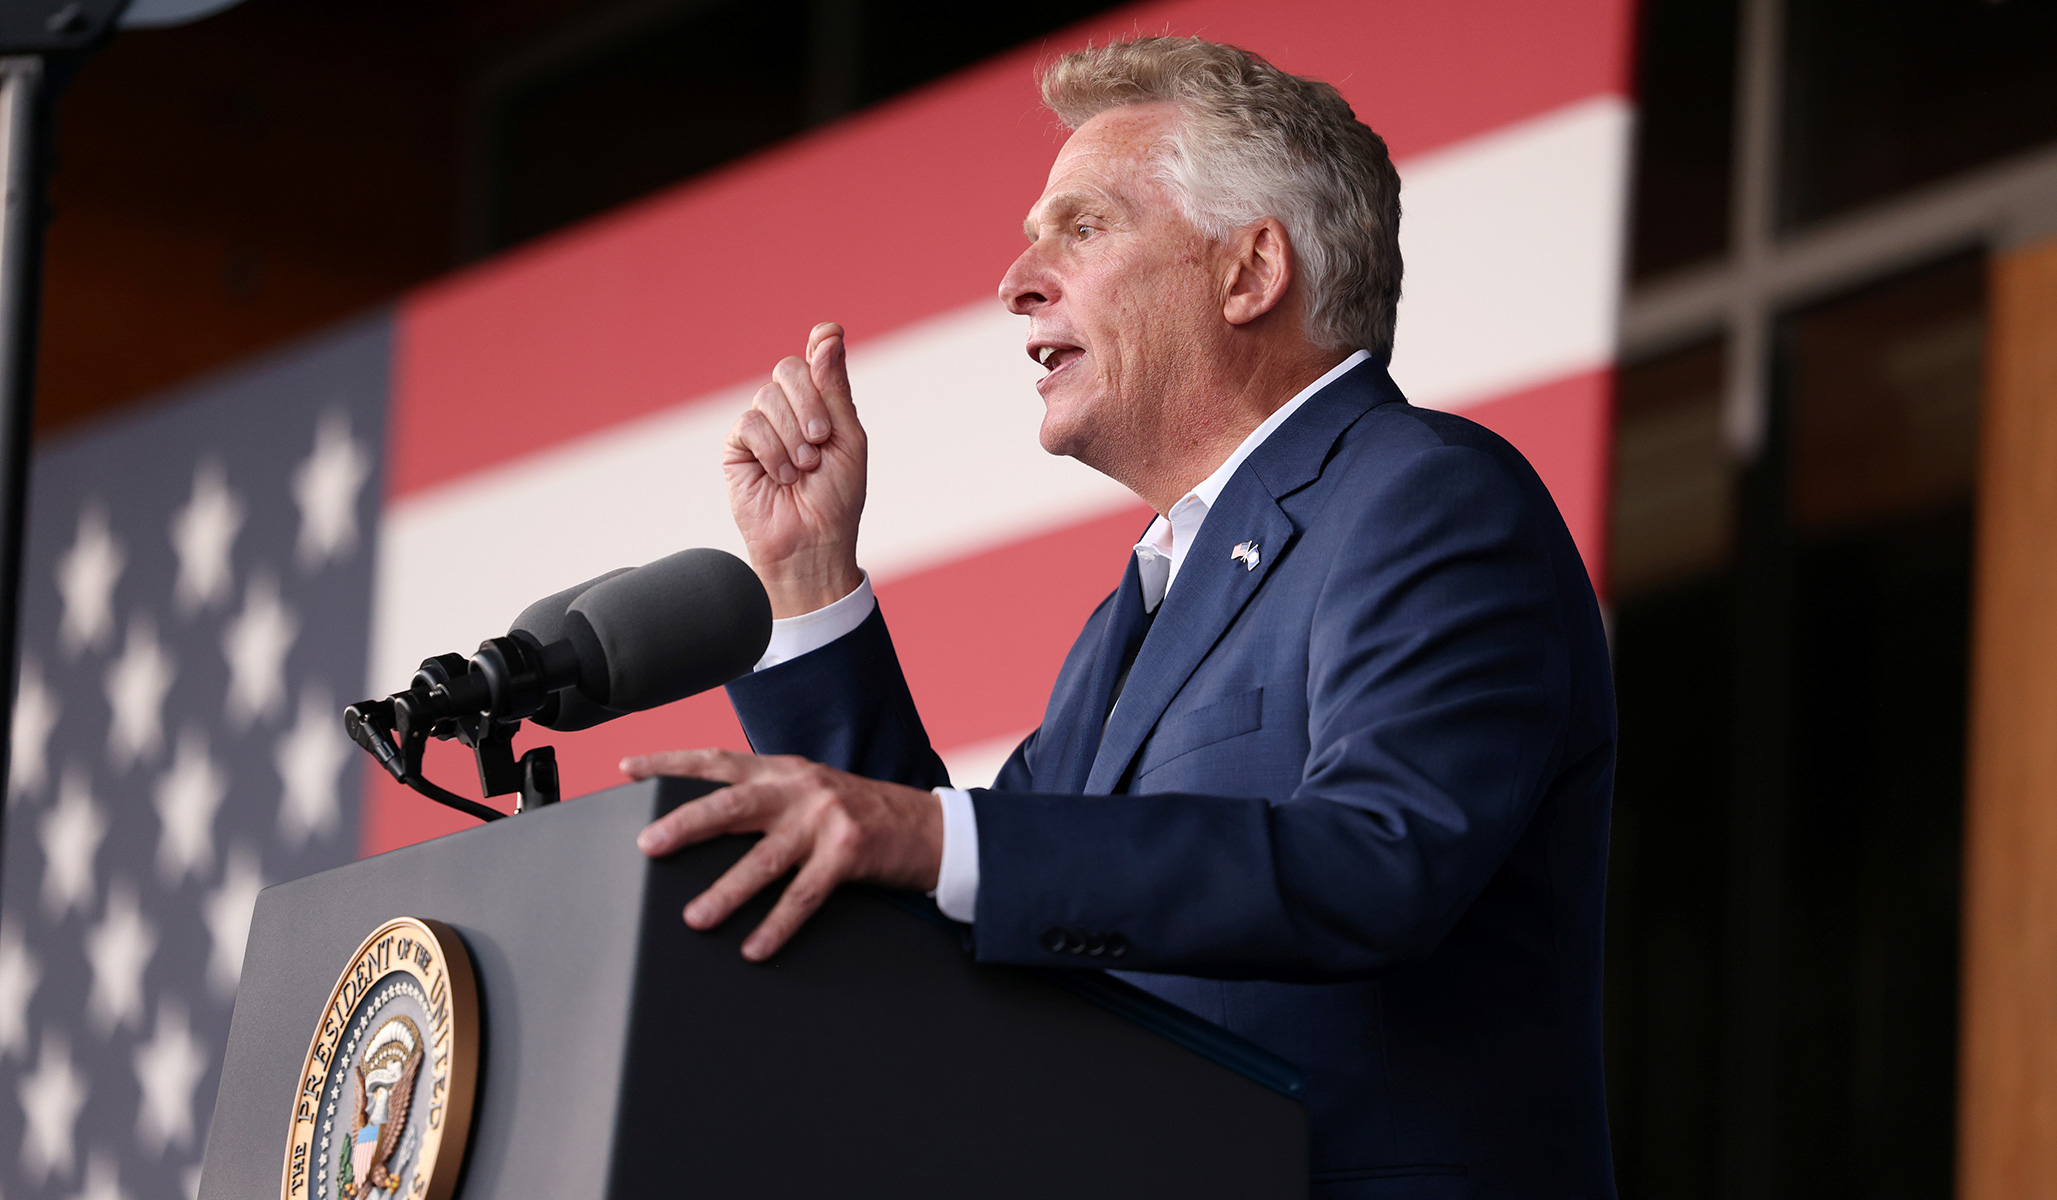 McAuliffe Sent Kids to School With 17 Separate PTA Committees